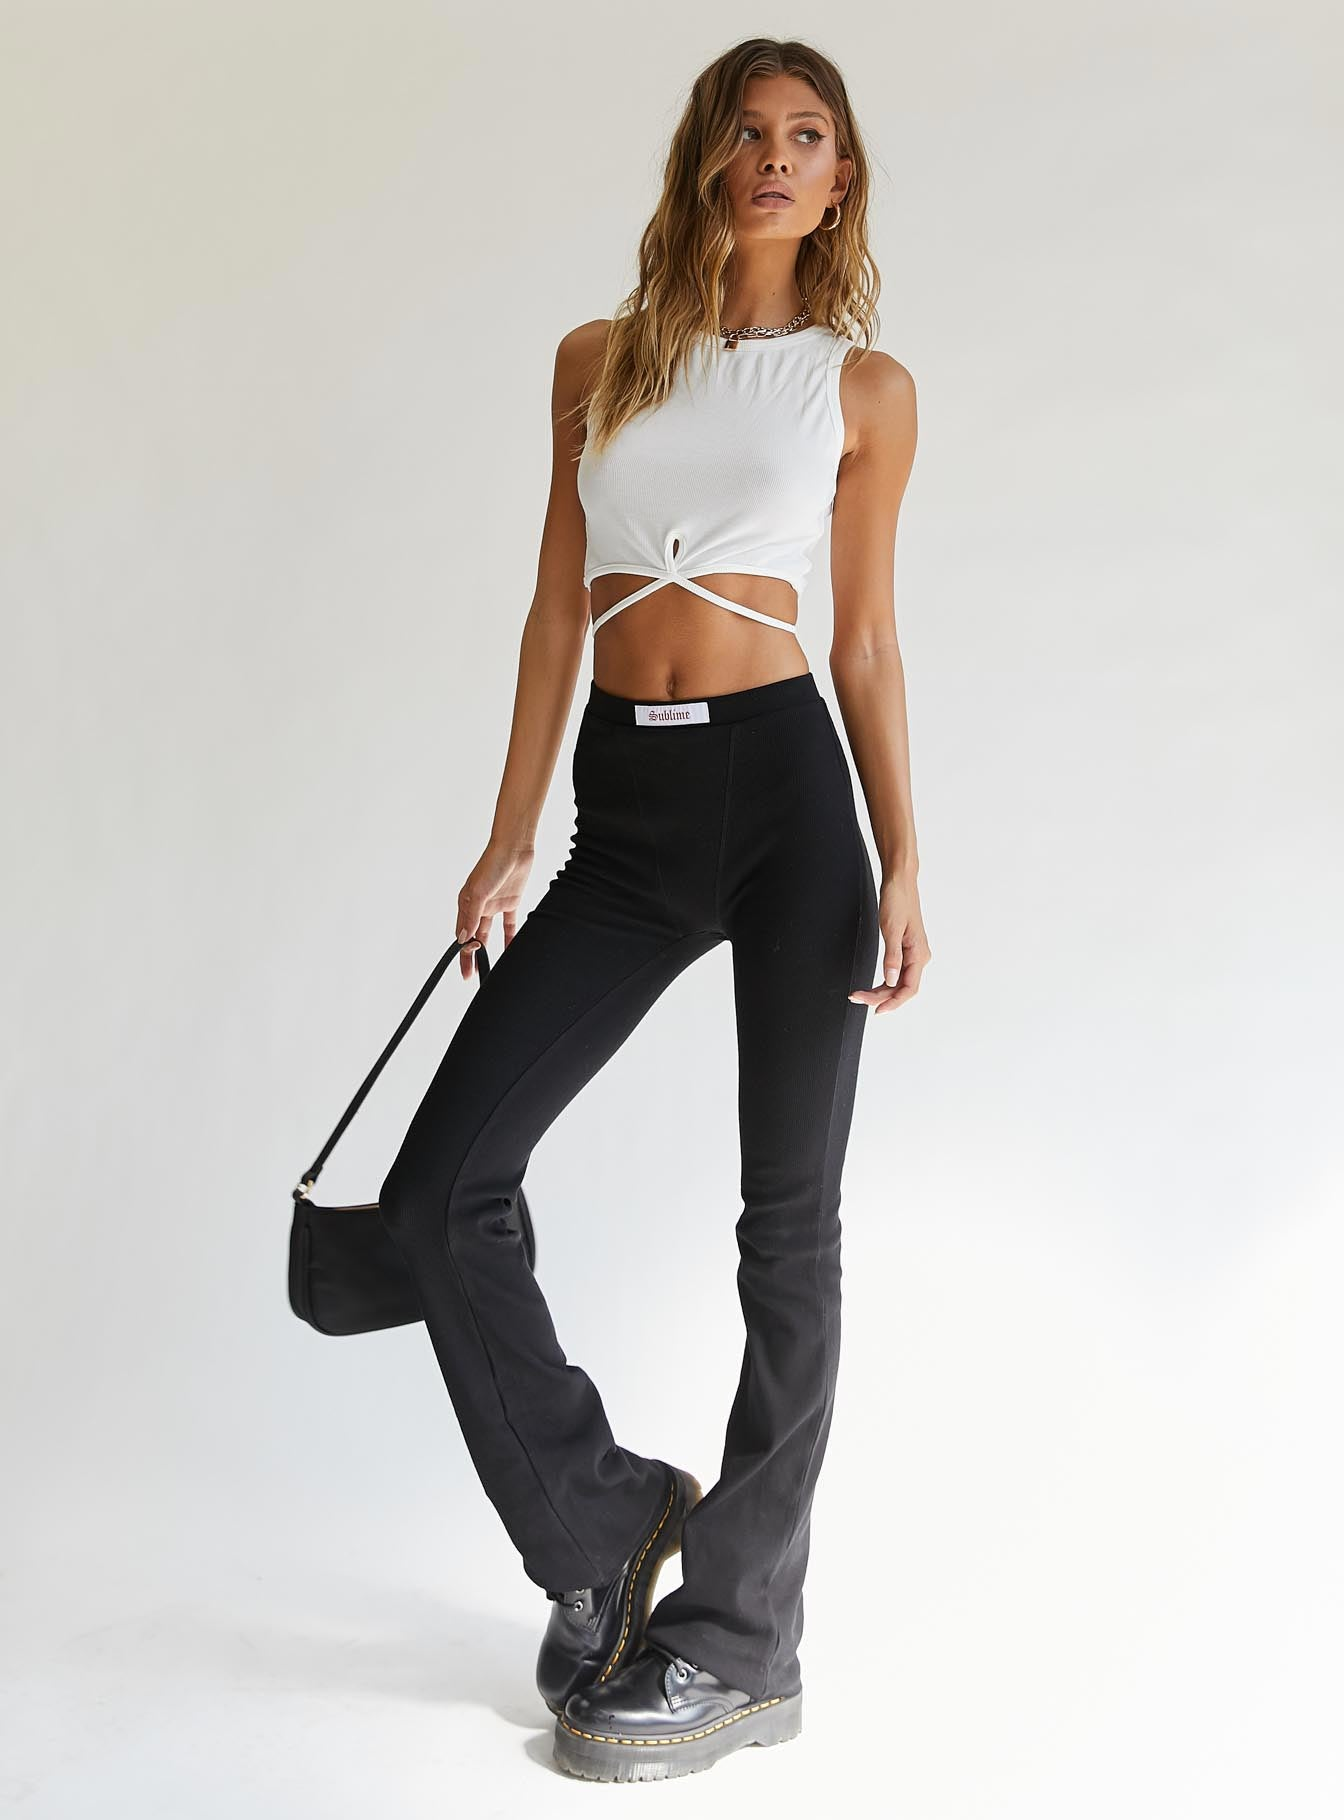 Highrack Black Sublime Rib Flares